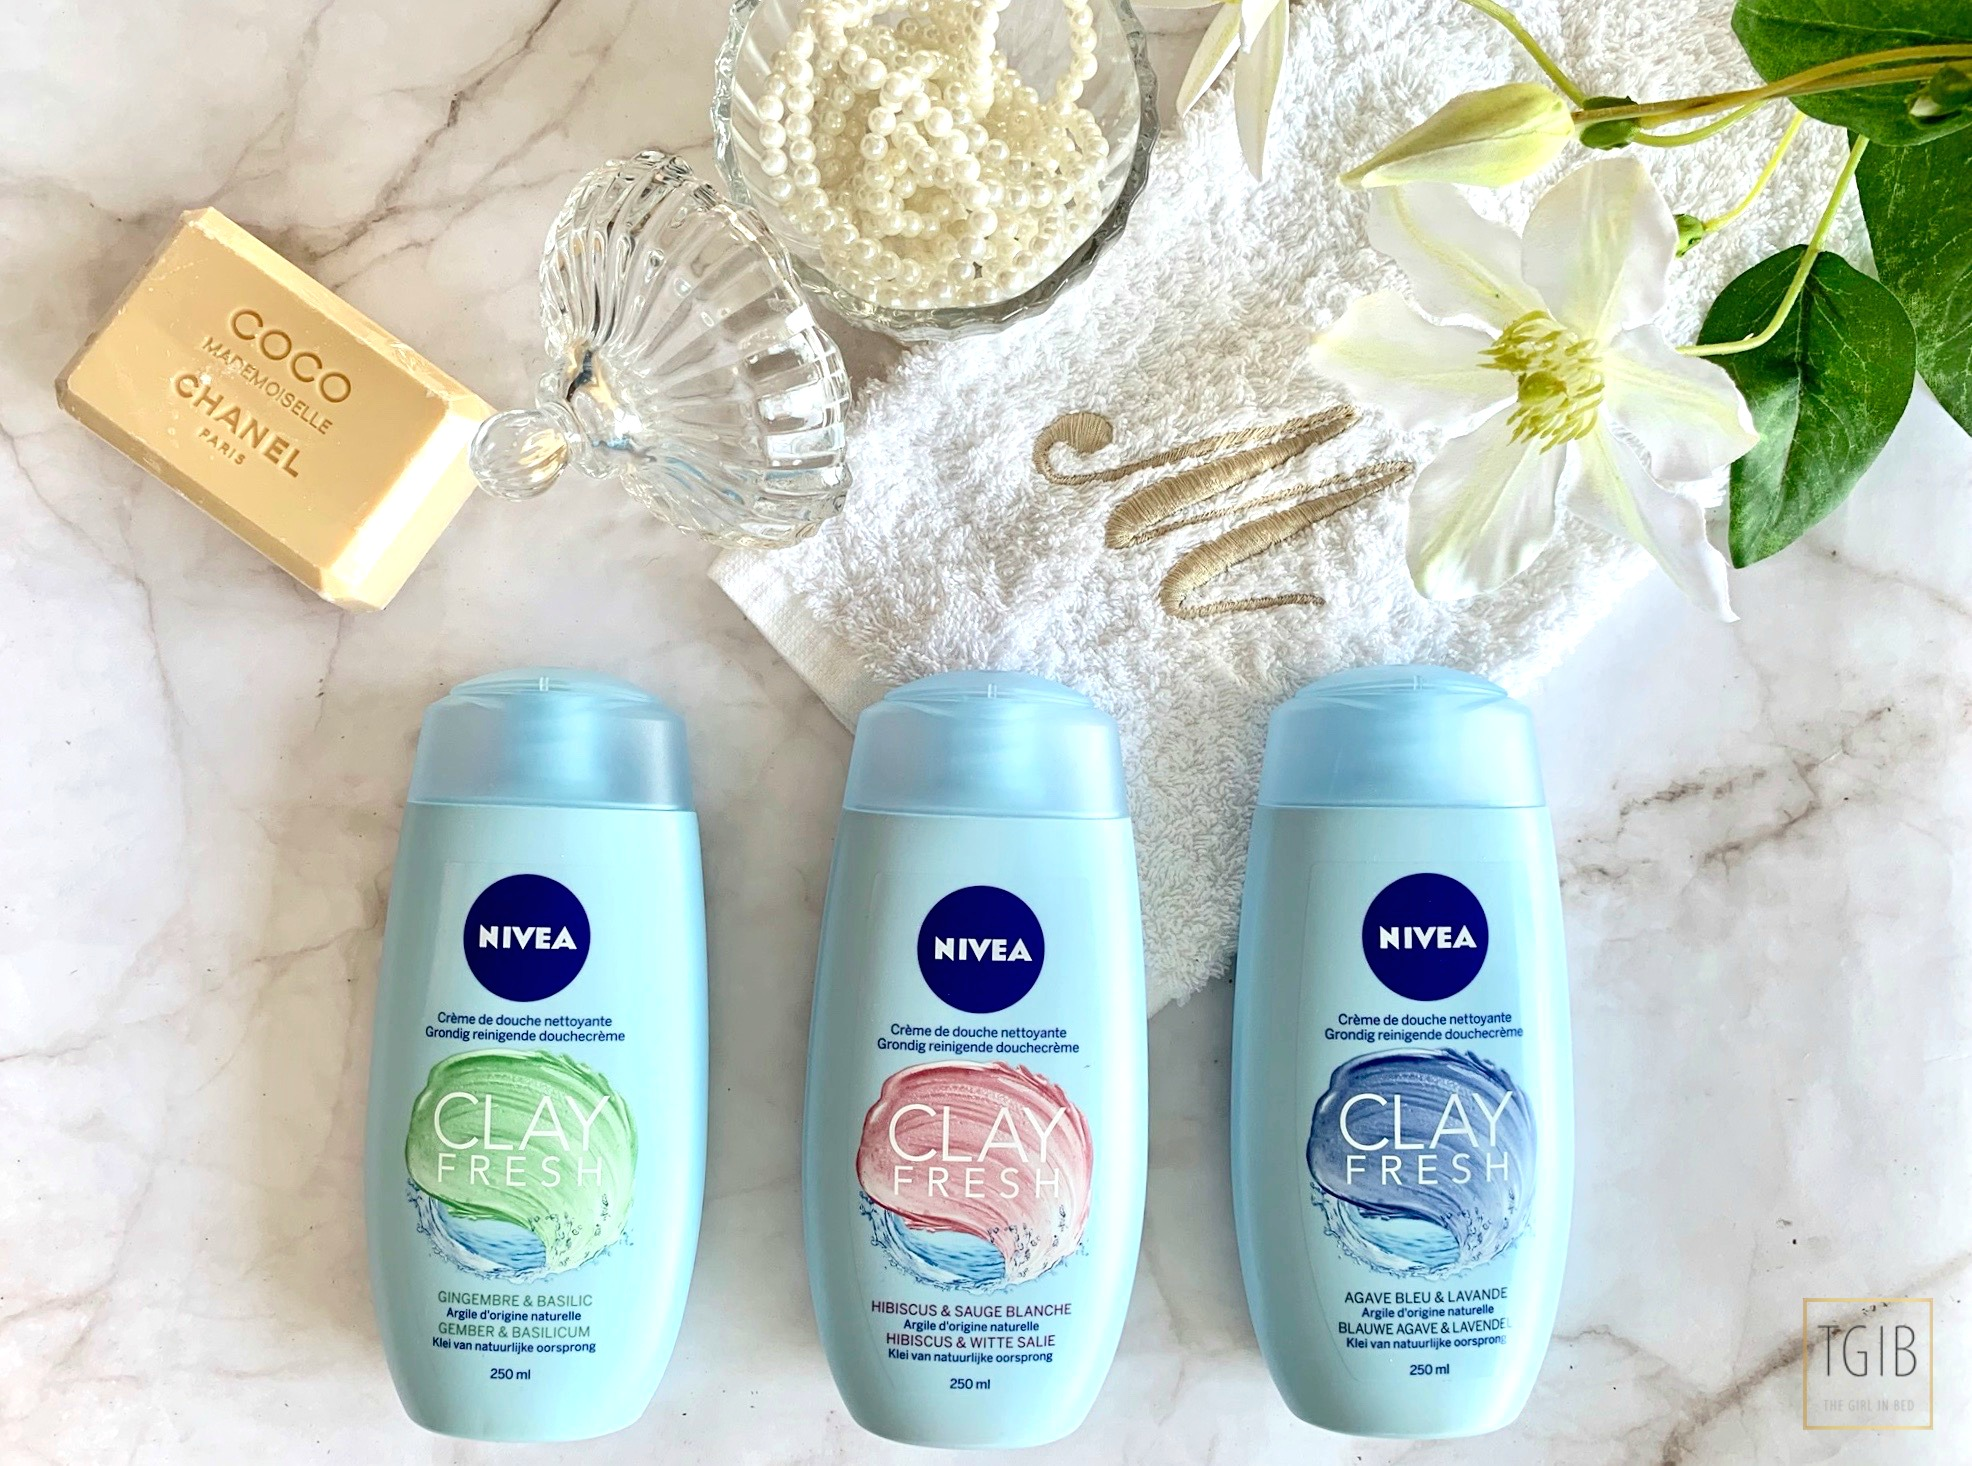 Nivea Clay Fresh Review